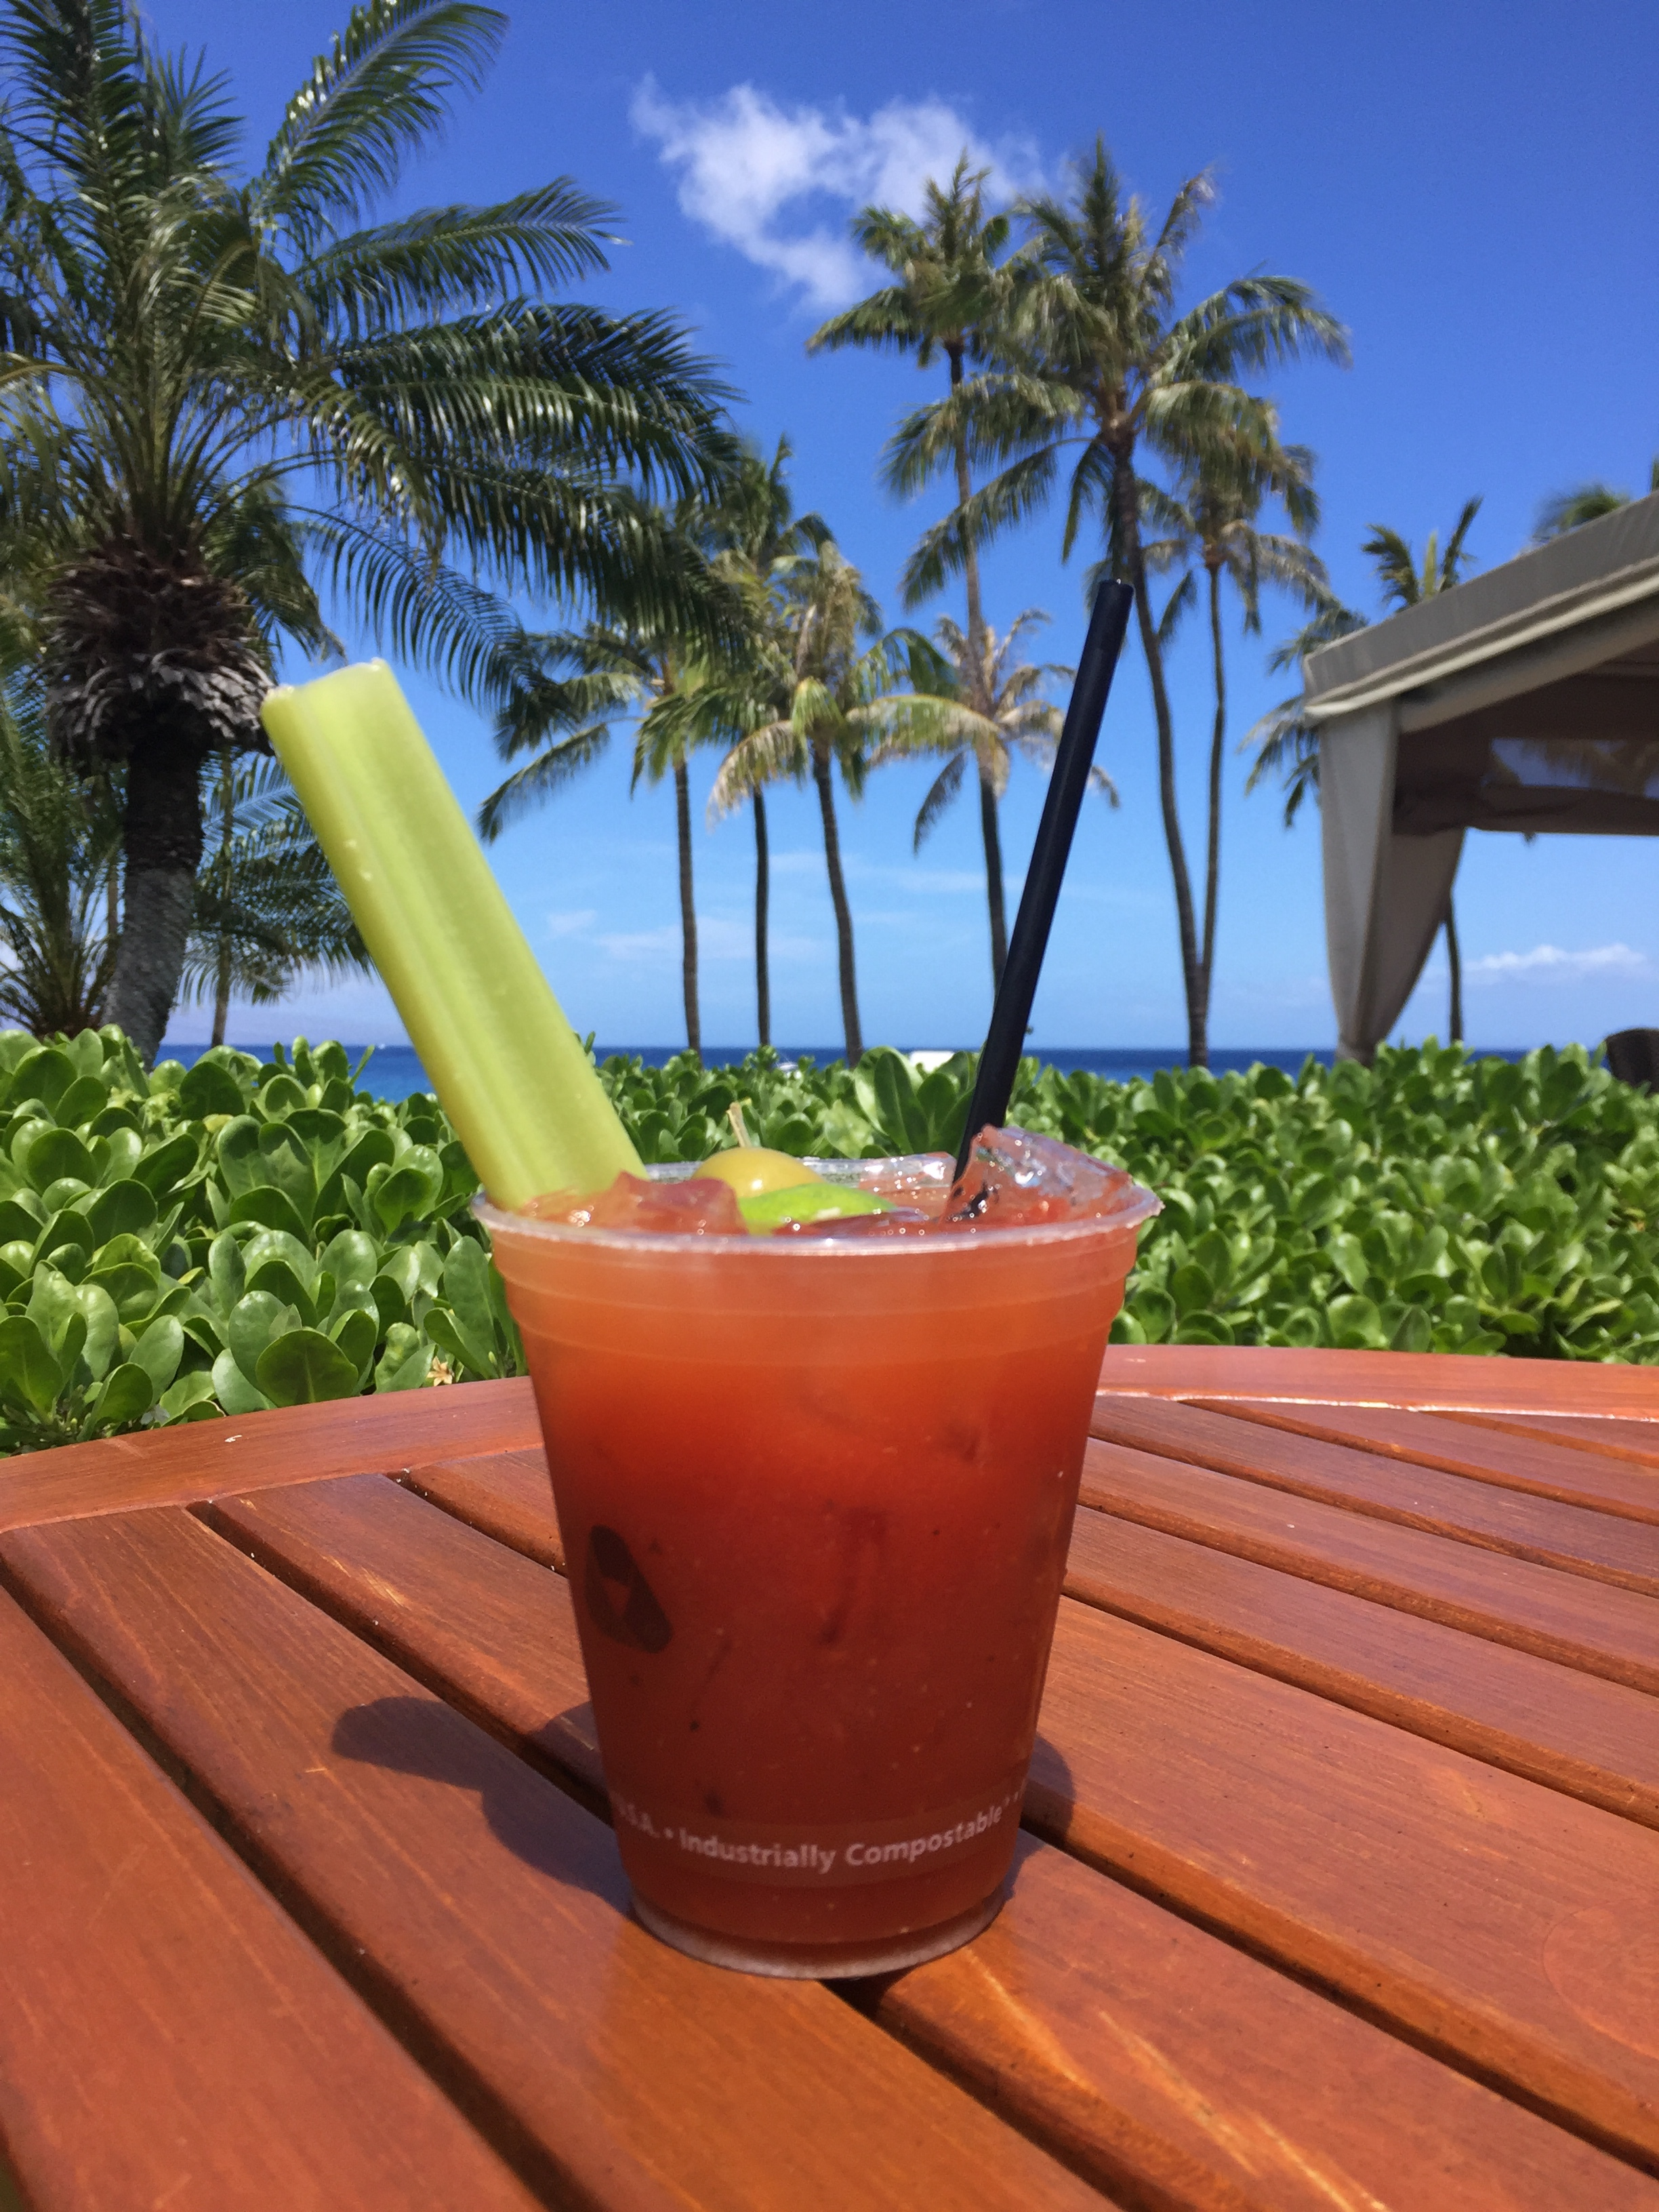 Standard Bloody Mary from the Westin, Maui's pool bar. I had quite a few of these as well!